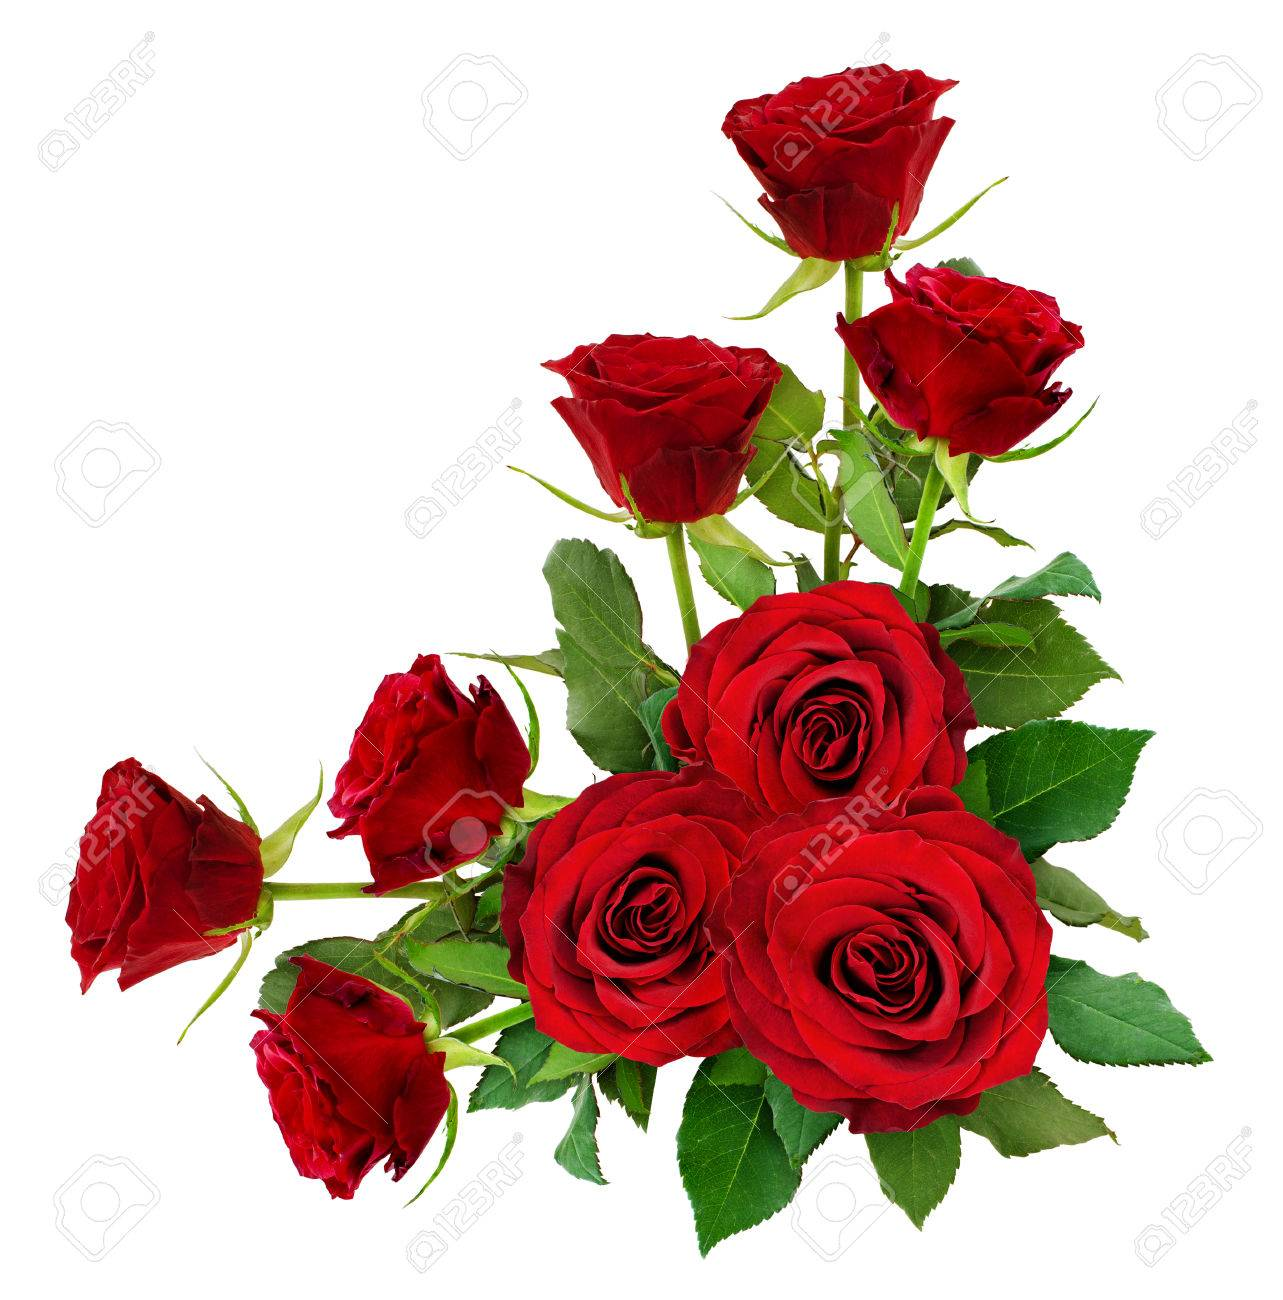 Red Rose Flowers With Leaves In A Corner Arrangement Isolated